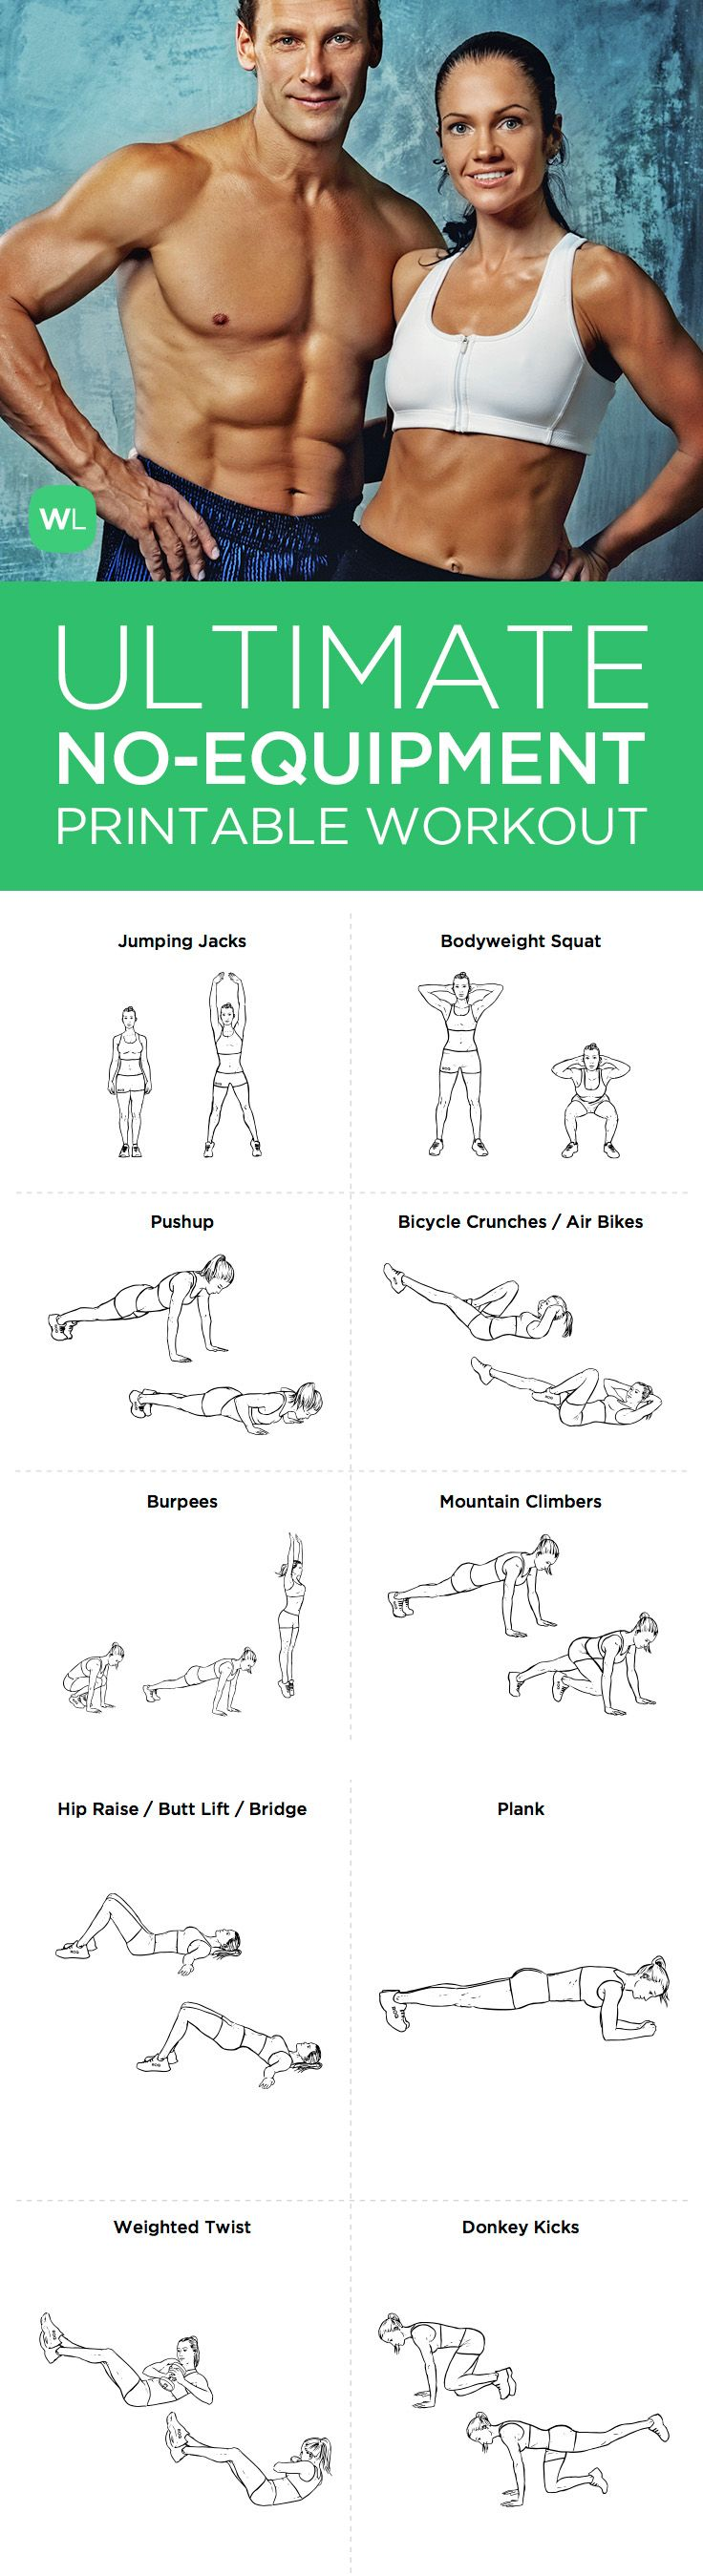 Visit http://workoutlabs.com/workout-plans/ultimate-at-home-full-body-no-equipment-printable-workout-routine/ for a FREE PDF of this intense HIIT at home full body printable workout you can do anywhere without equipment.